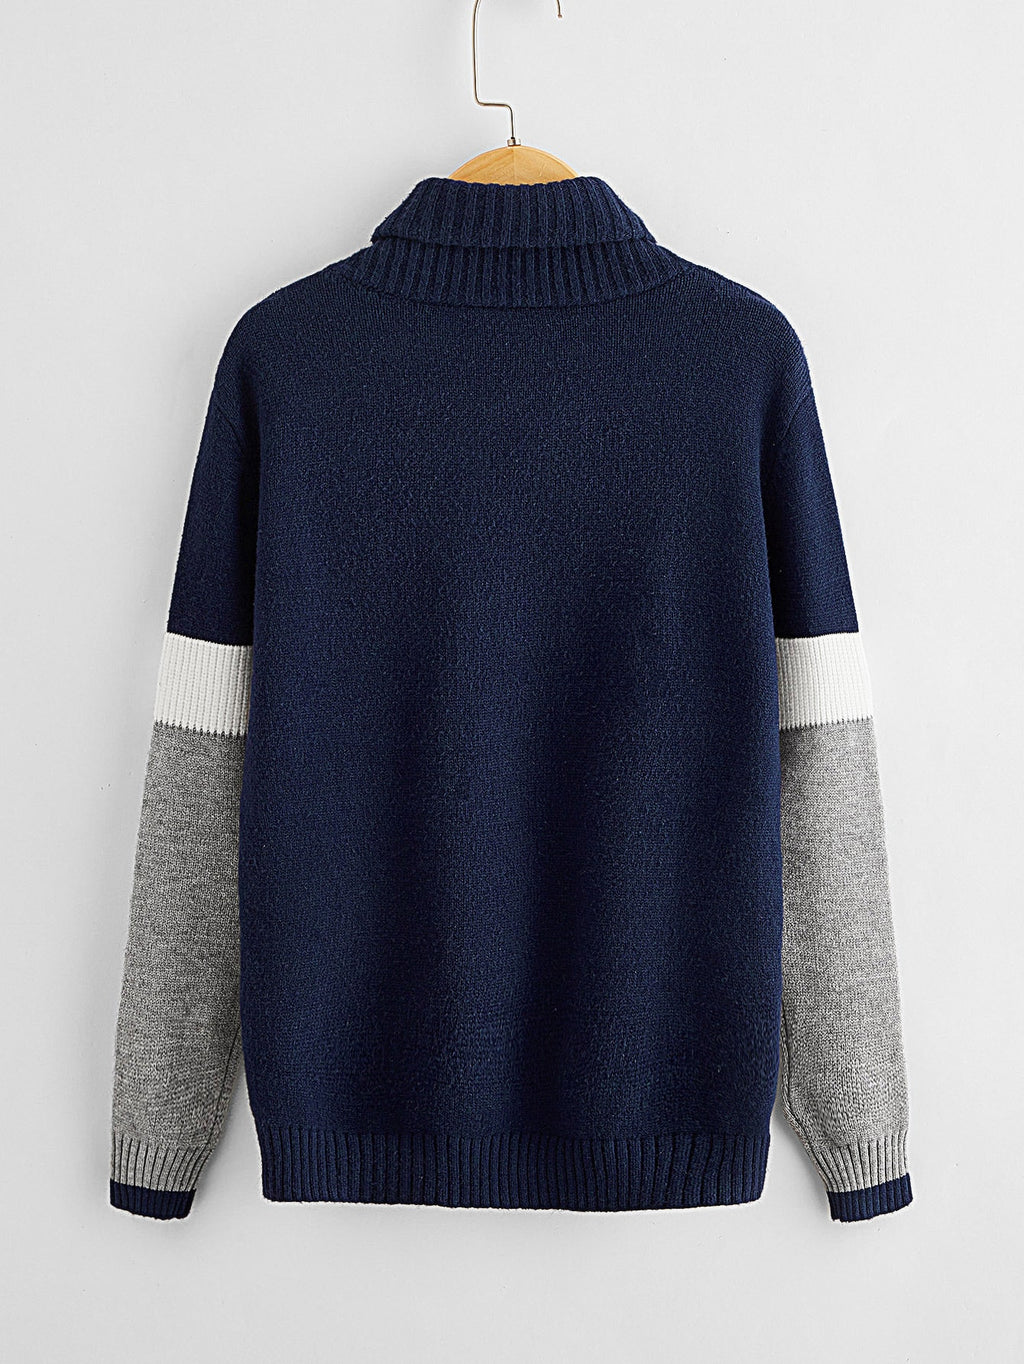 Boys Overlap Collar Colorblock Sweater